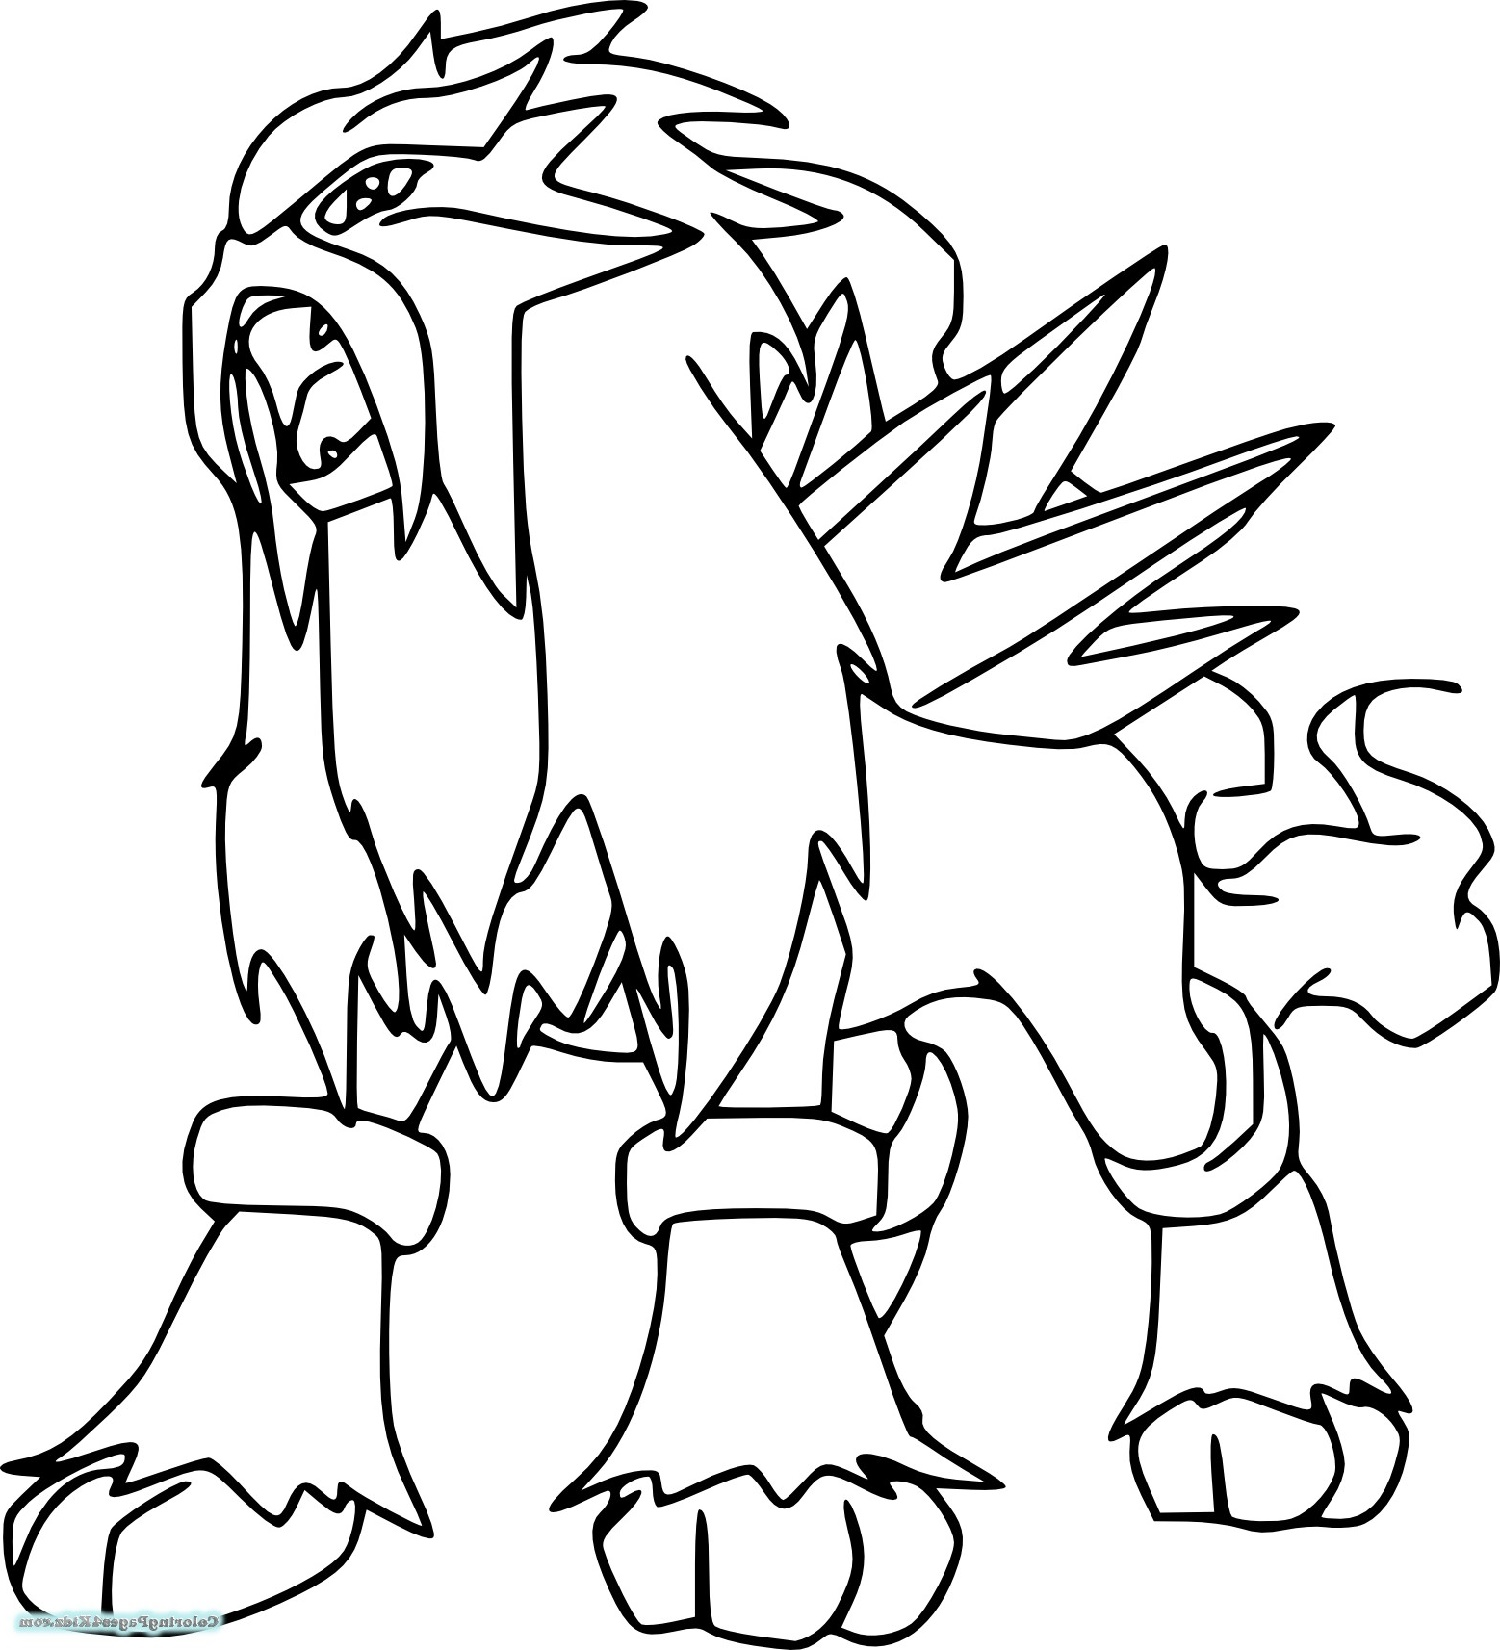 pokemon coloring books coloring pages pokémon animated images gifs pictures books coloring pokemon